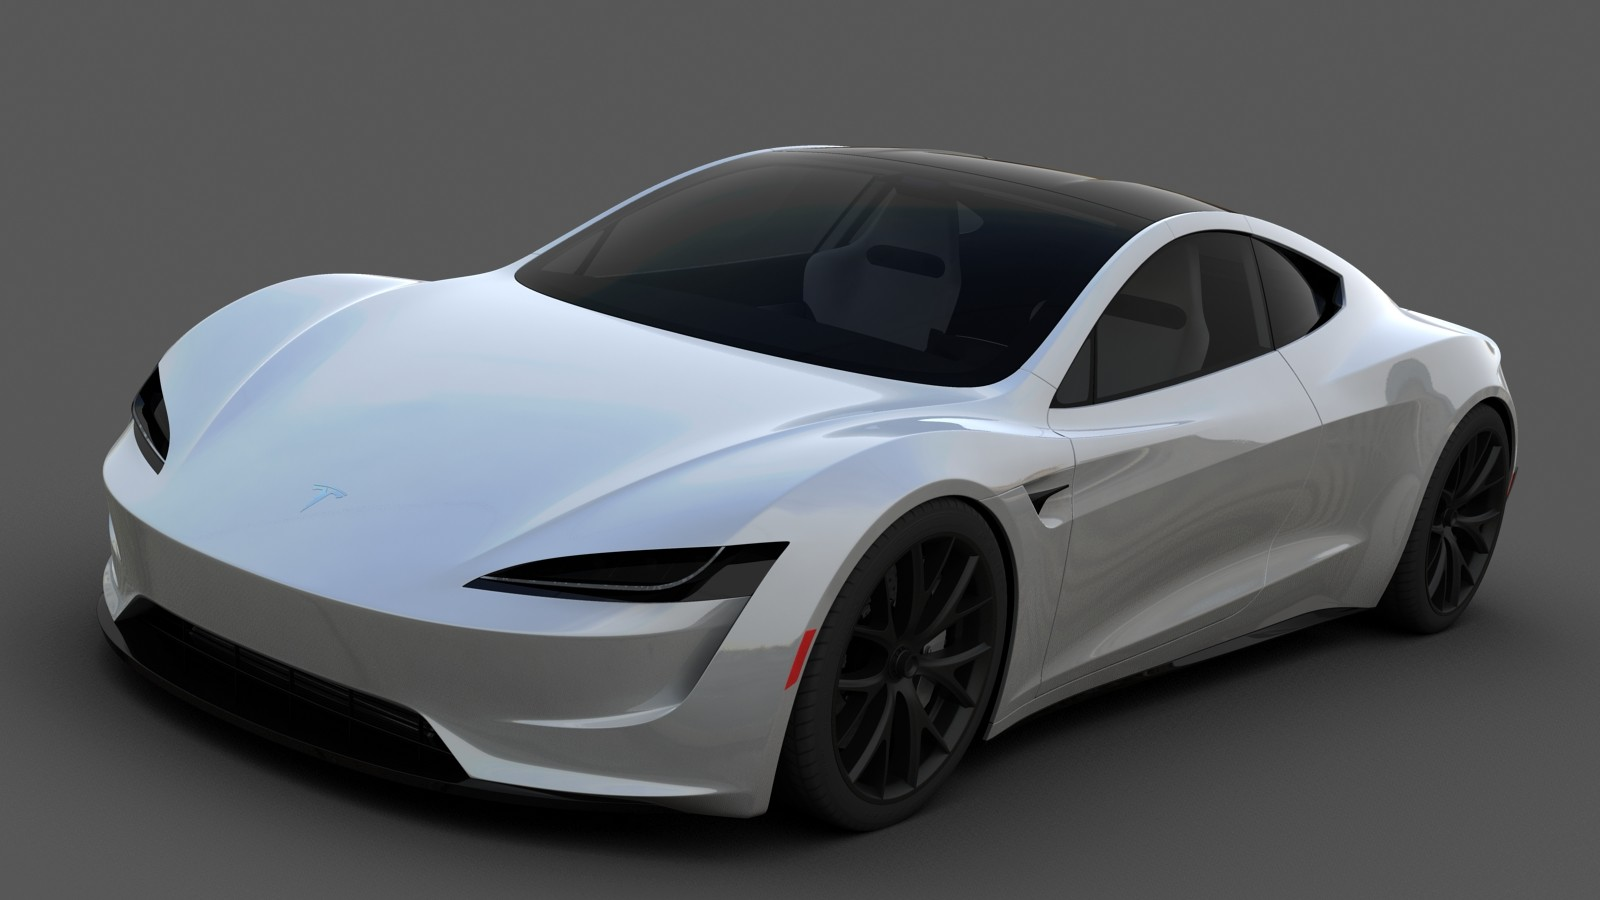 Tesla Roadster Hd Wallpaper Posted By Samantha Sellers